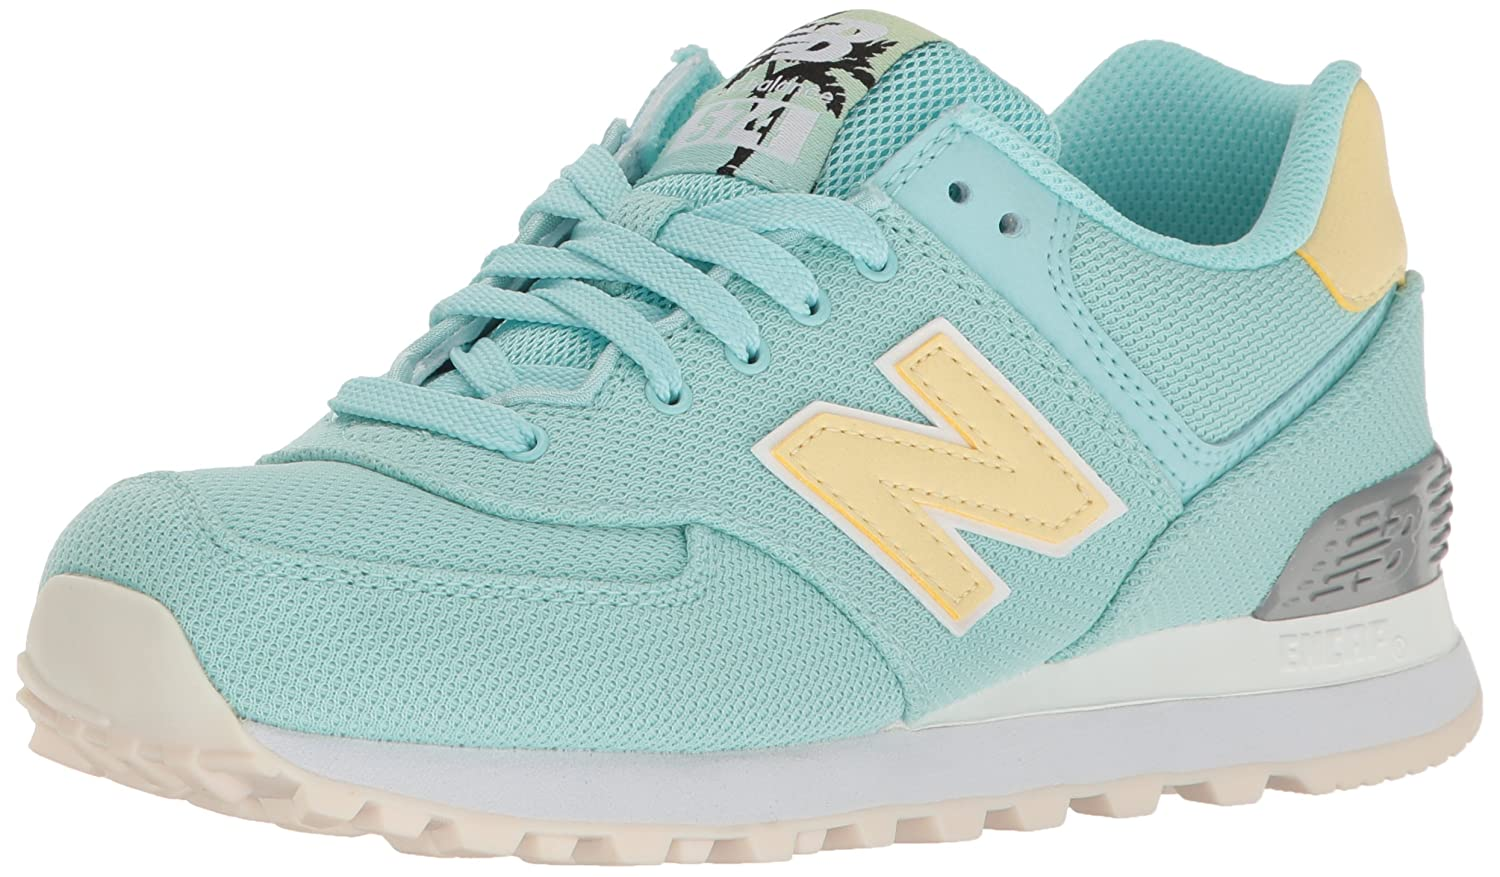 New Balance Women's 574 Miami Palms Pack Lifestyle Fashion Sneaker B01LX1M1E6 5 B(M) US|Ozone Blue Glo/Pollen